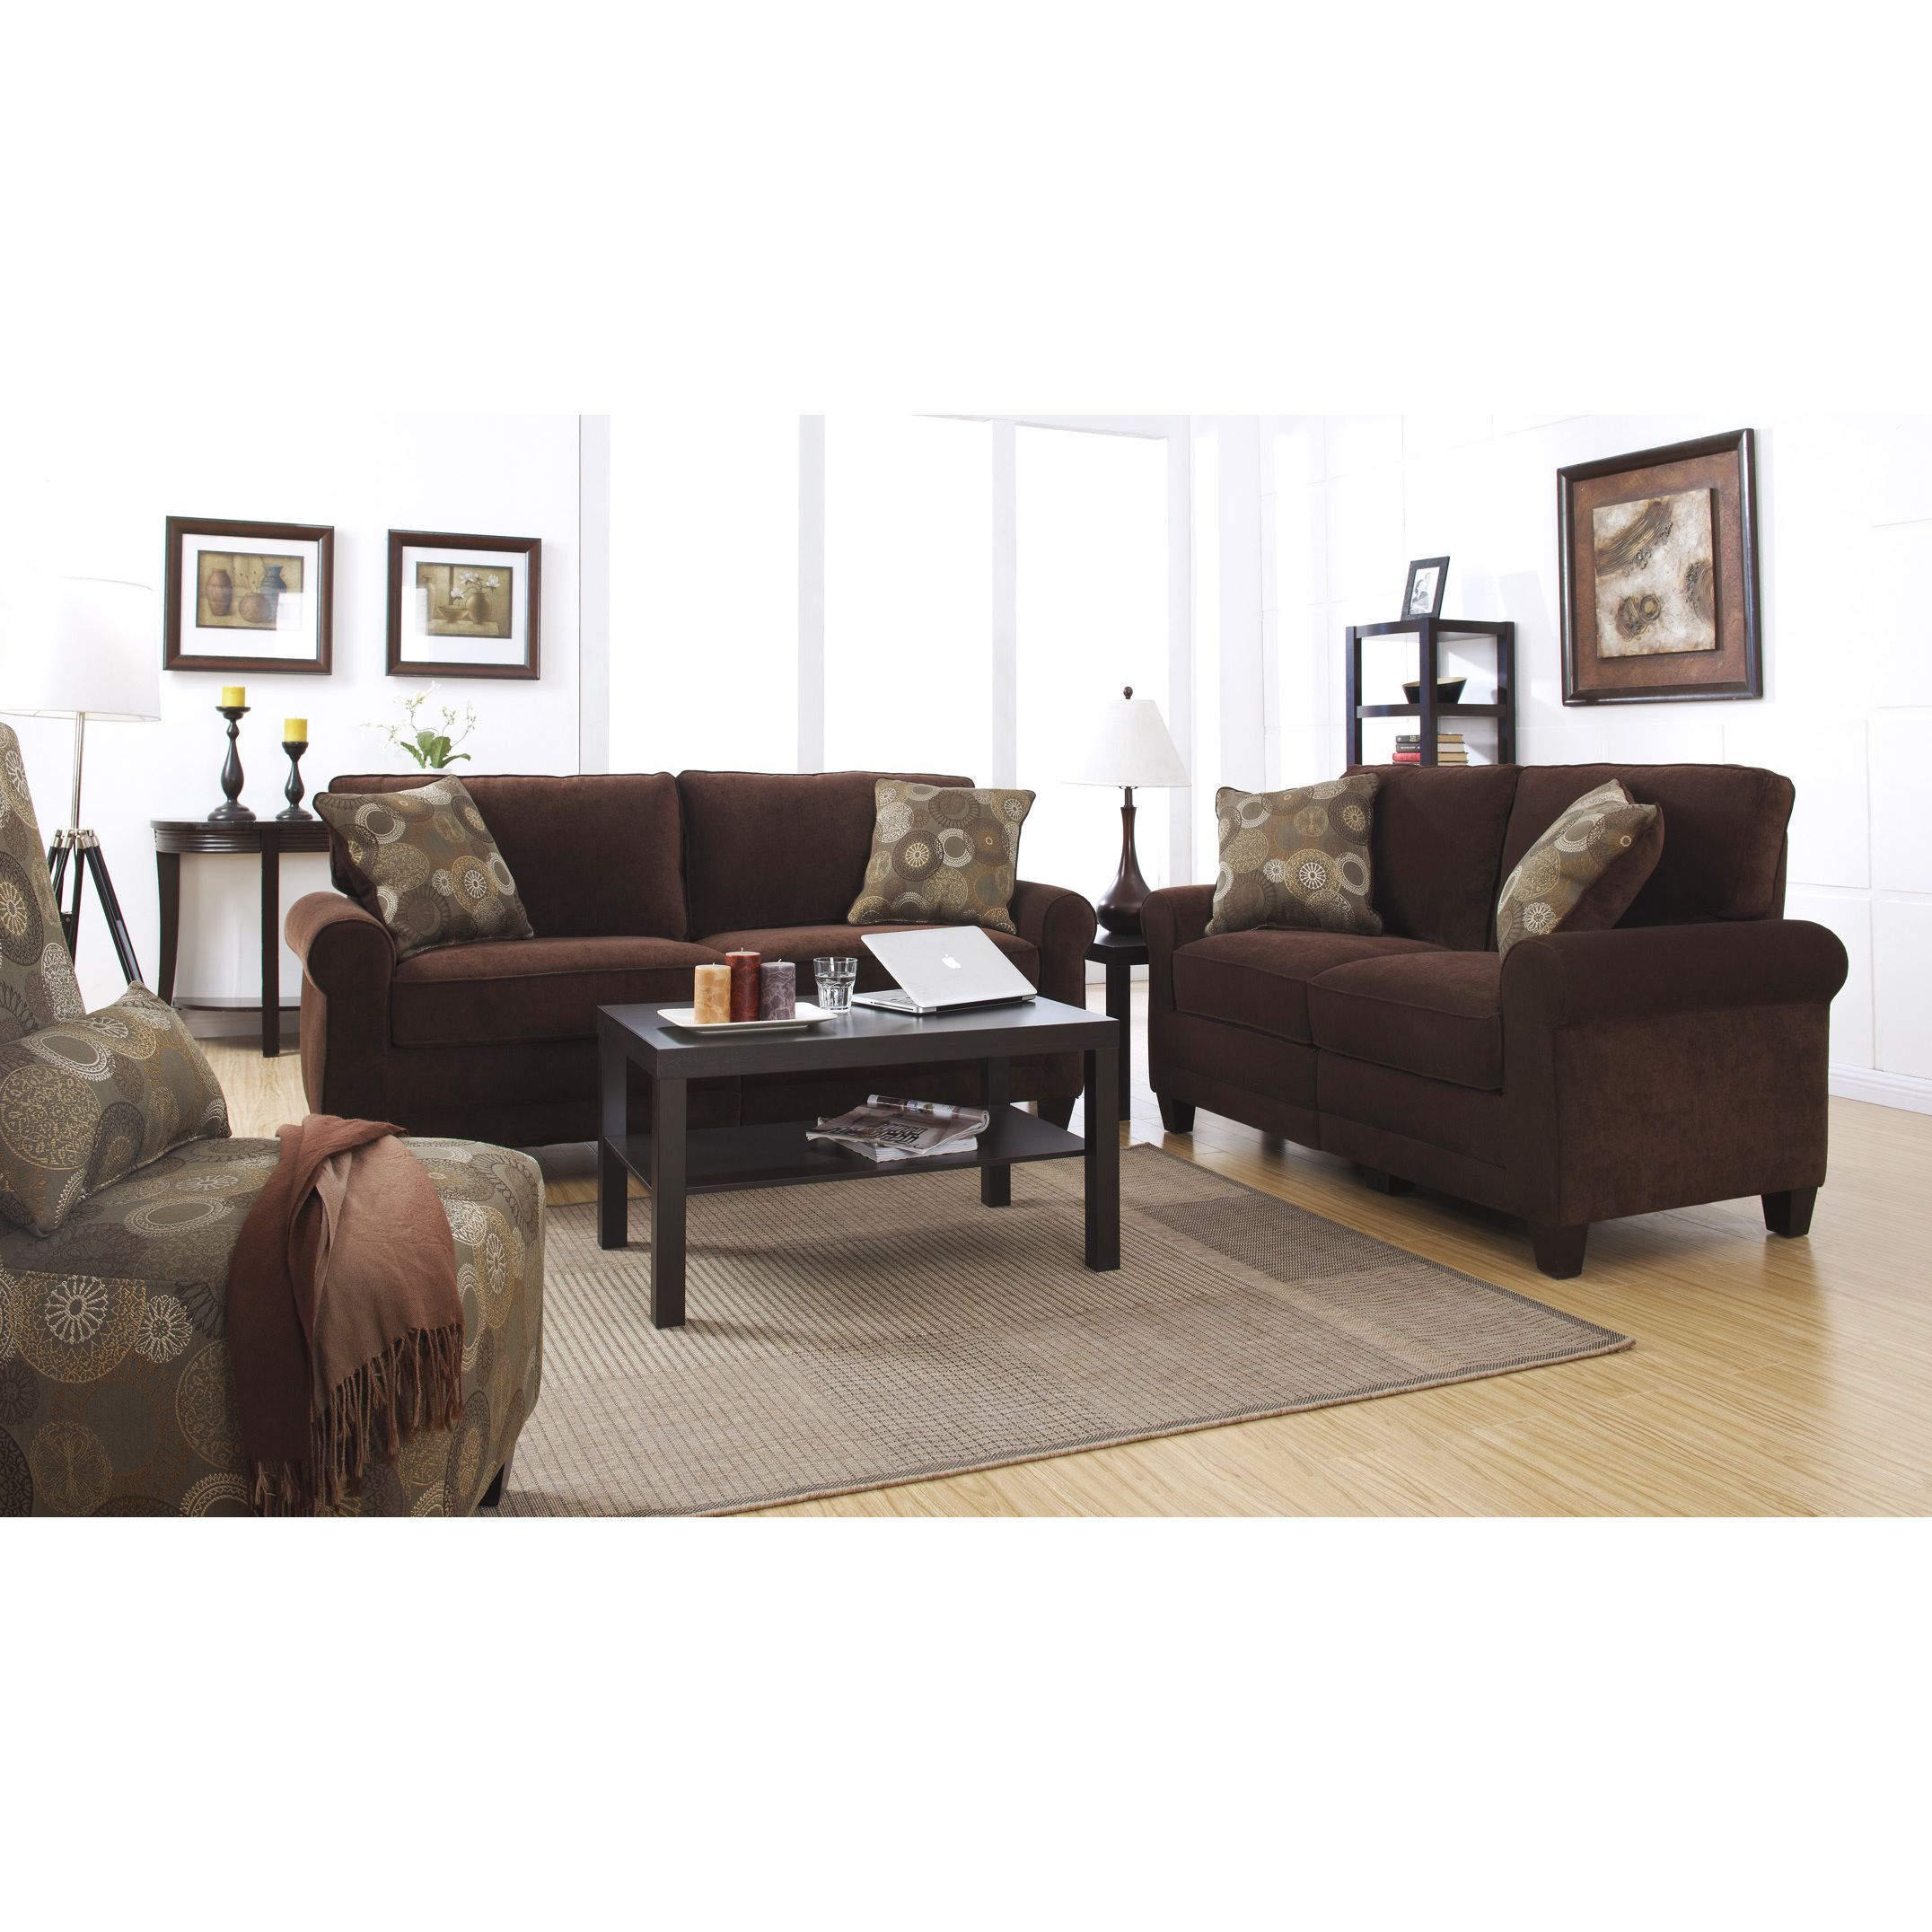 Overstock Com Online Shopping Bedding Furniture Electronics Jewelry Clothing More Living Room Collections Living Room Sets Fabric Sofa #serta #living #room #sets